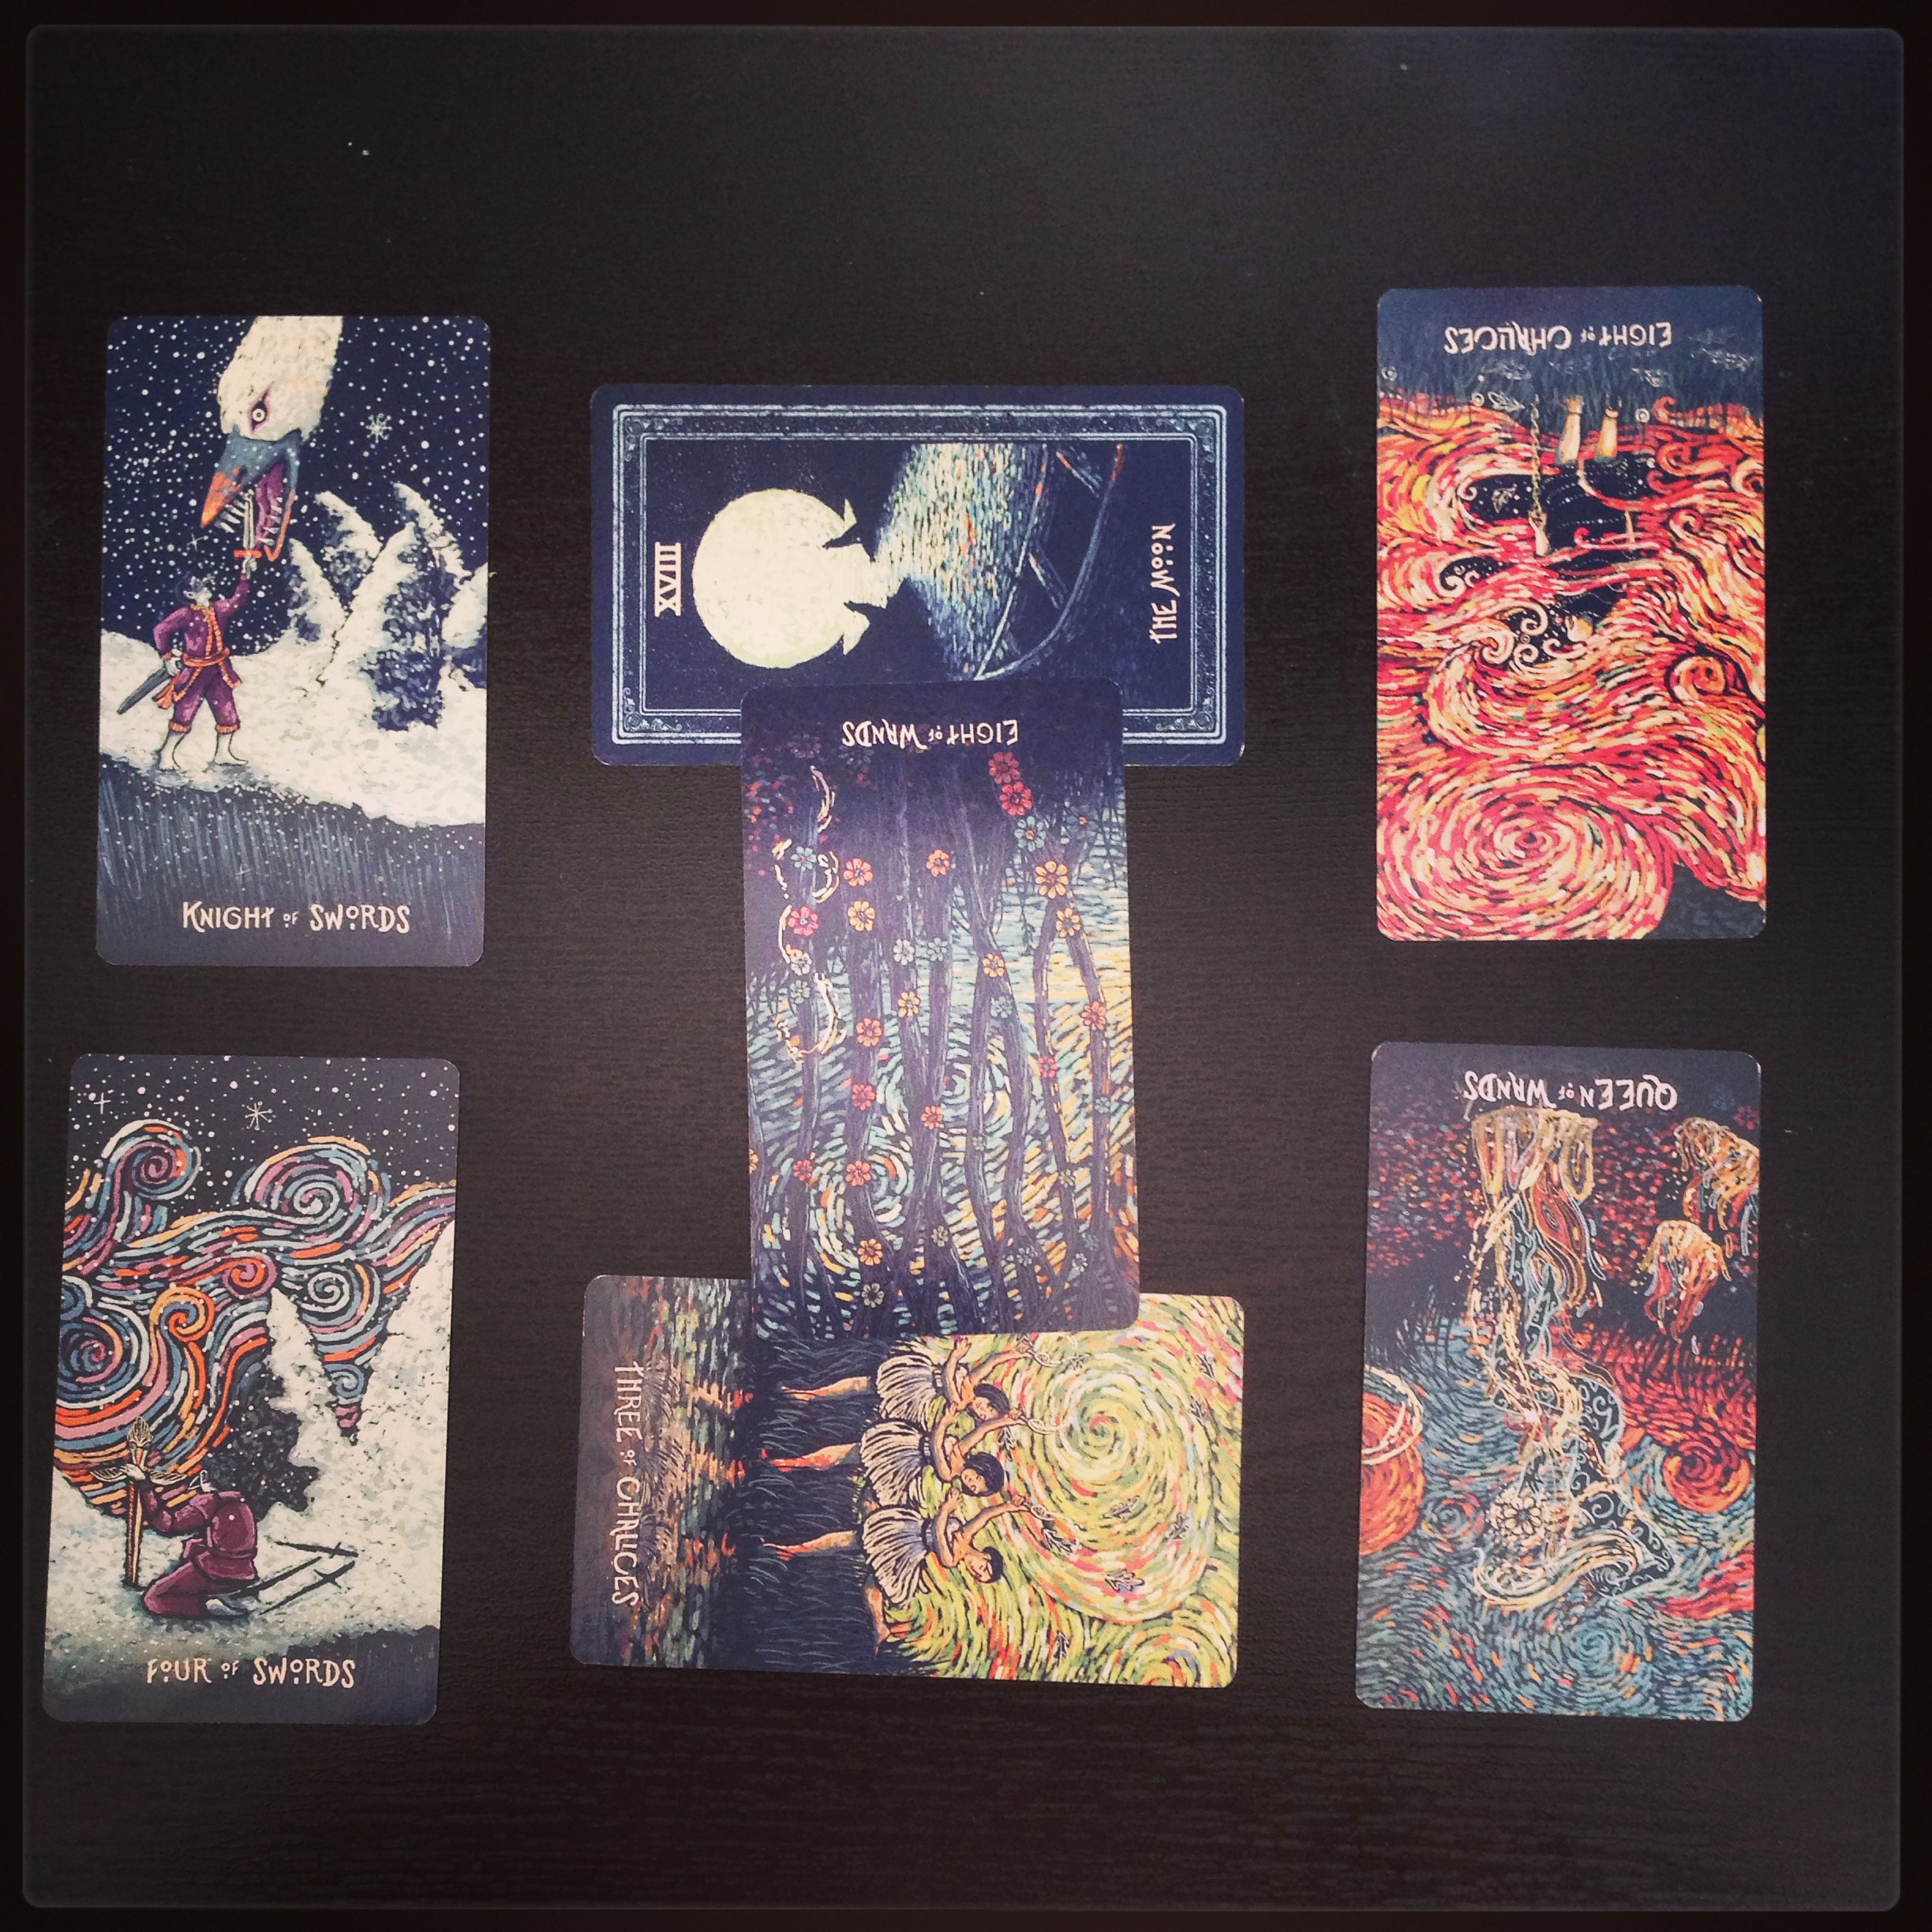 Prisma Visions tarot deck by James R. Eads (click to enlarge image)